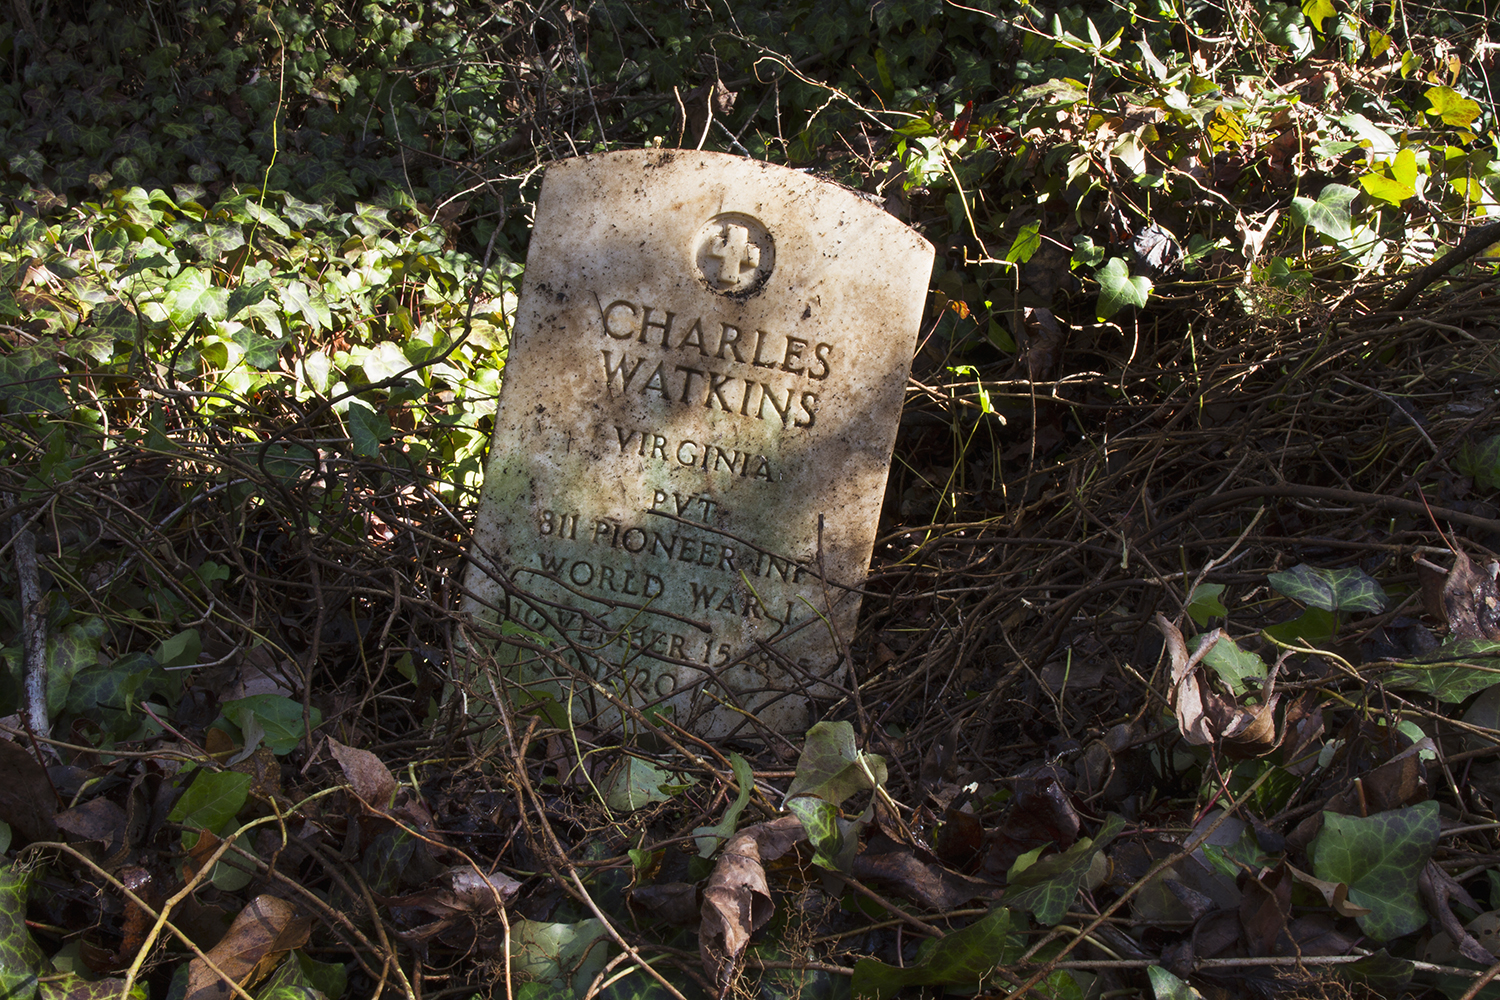 Recently revealed grave of Charles Watkins in a largely uncleared section of East End Cemetery, January 2015.©brianpalmer.photos 2015